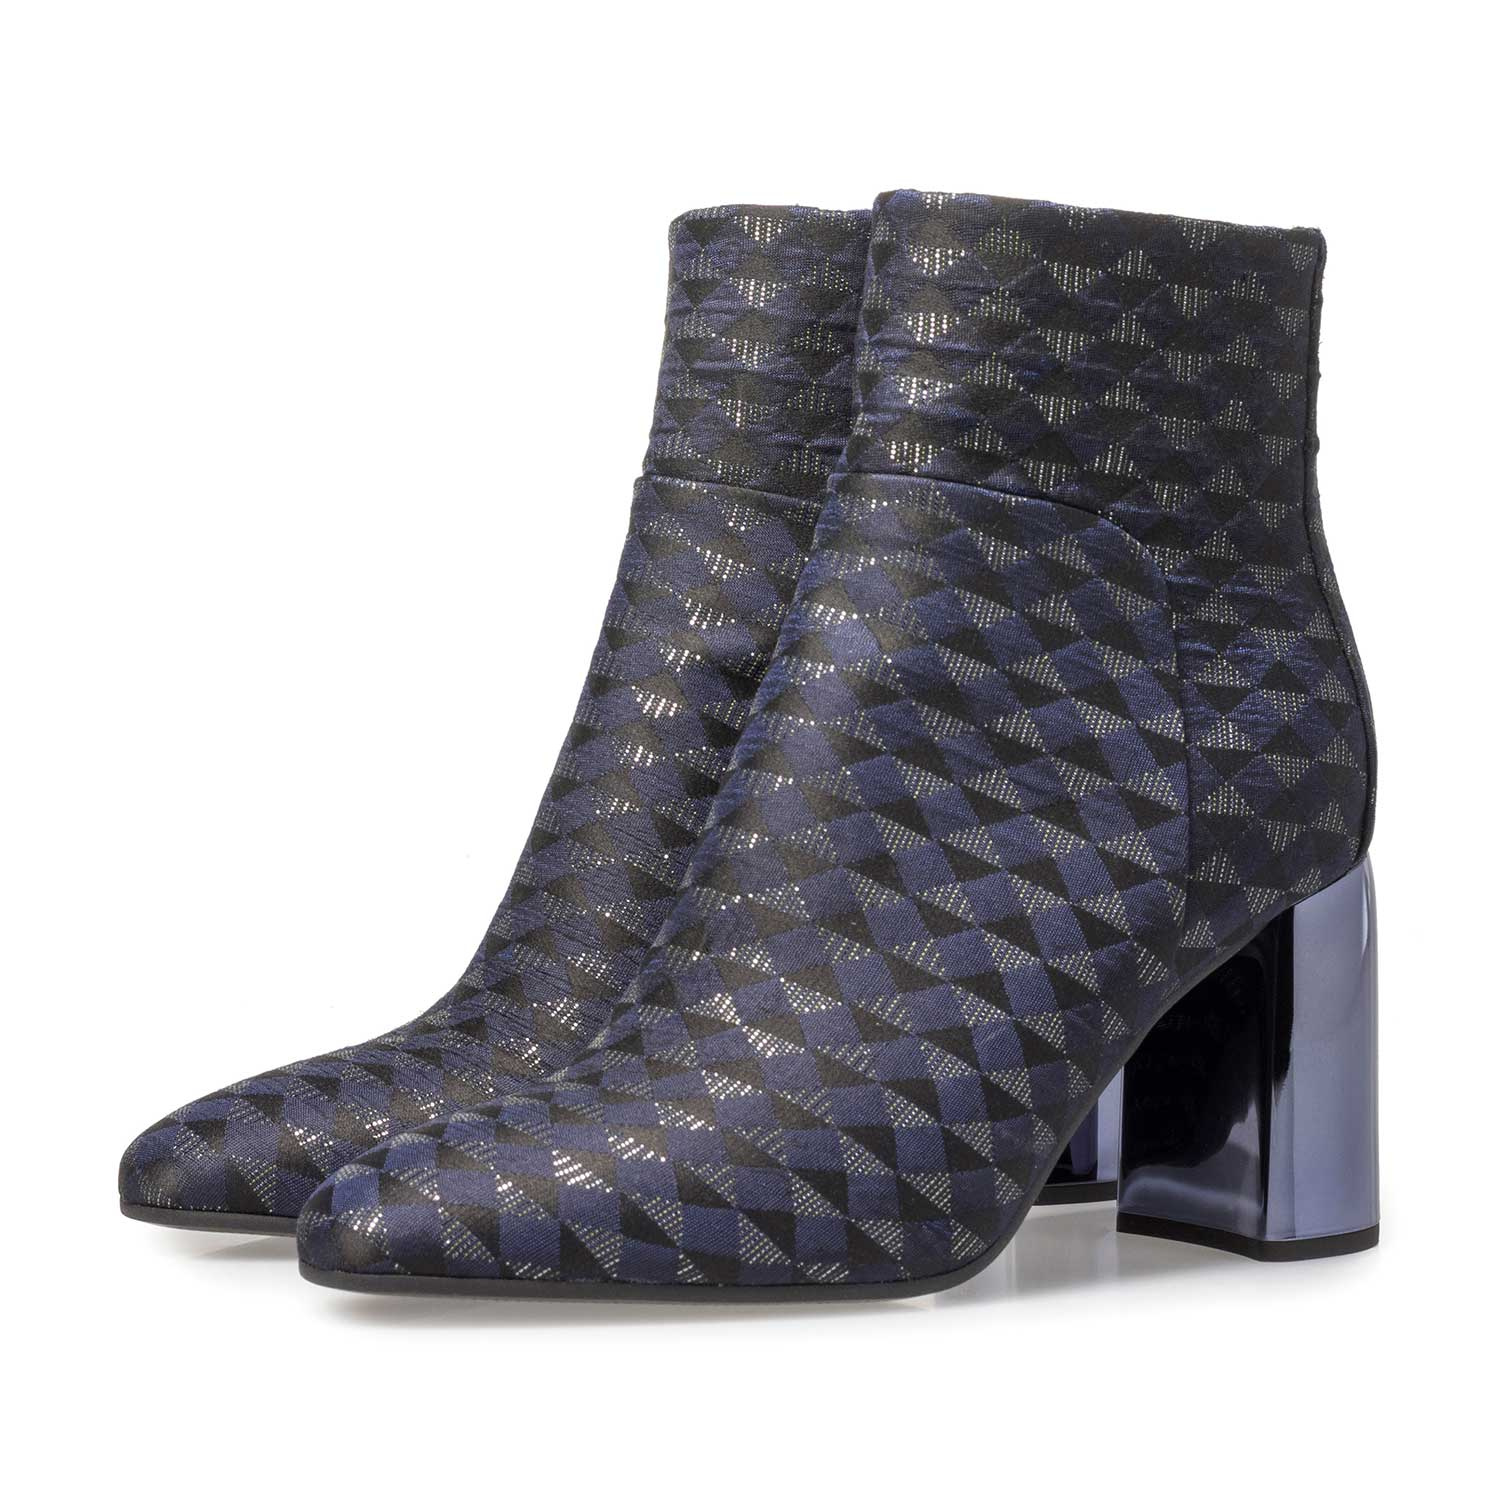 85624/05 - Blue ankle boots with graphic print